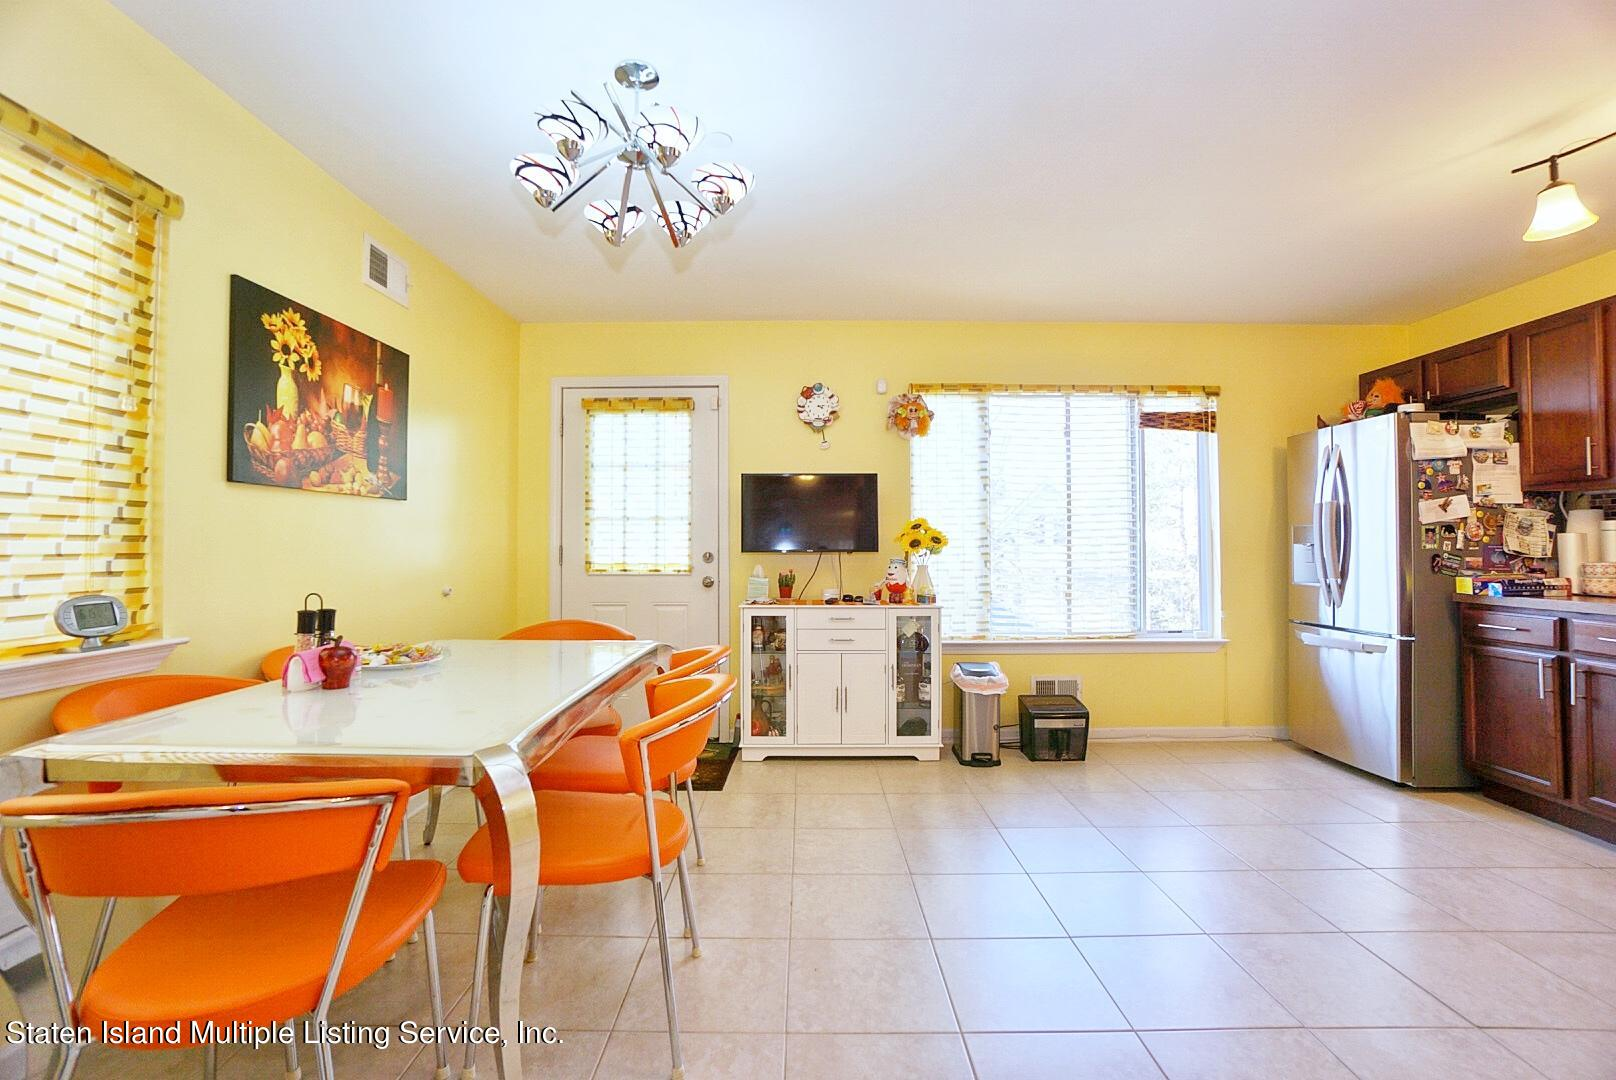 Single Family - Detached 171 Benziger Avenue  Staten Island, NY 10301, MLS-1145235-11